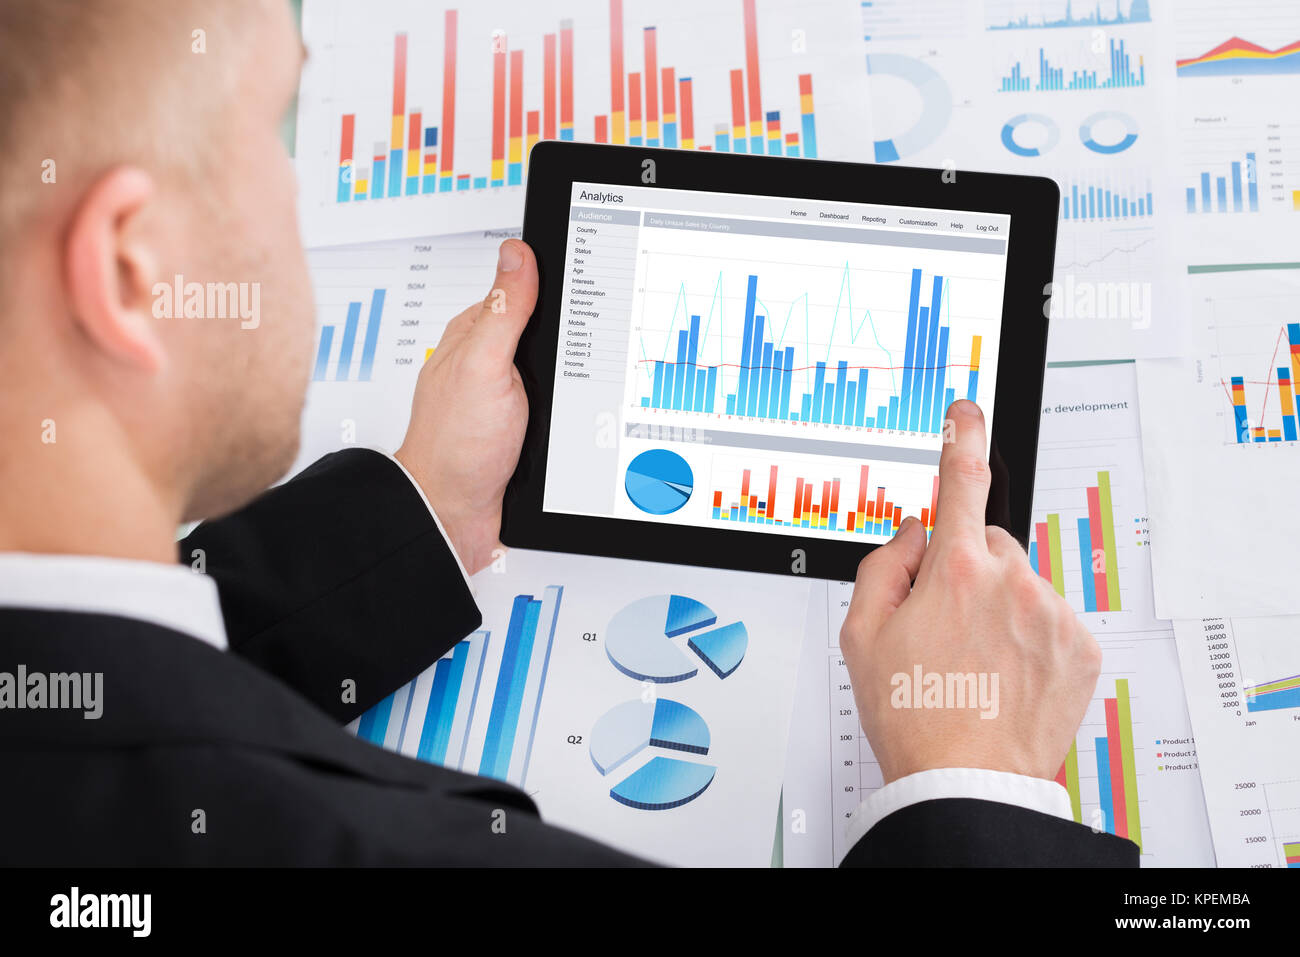 Businessperson Analyzing Graph On Digital Tablet - Stock Image